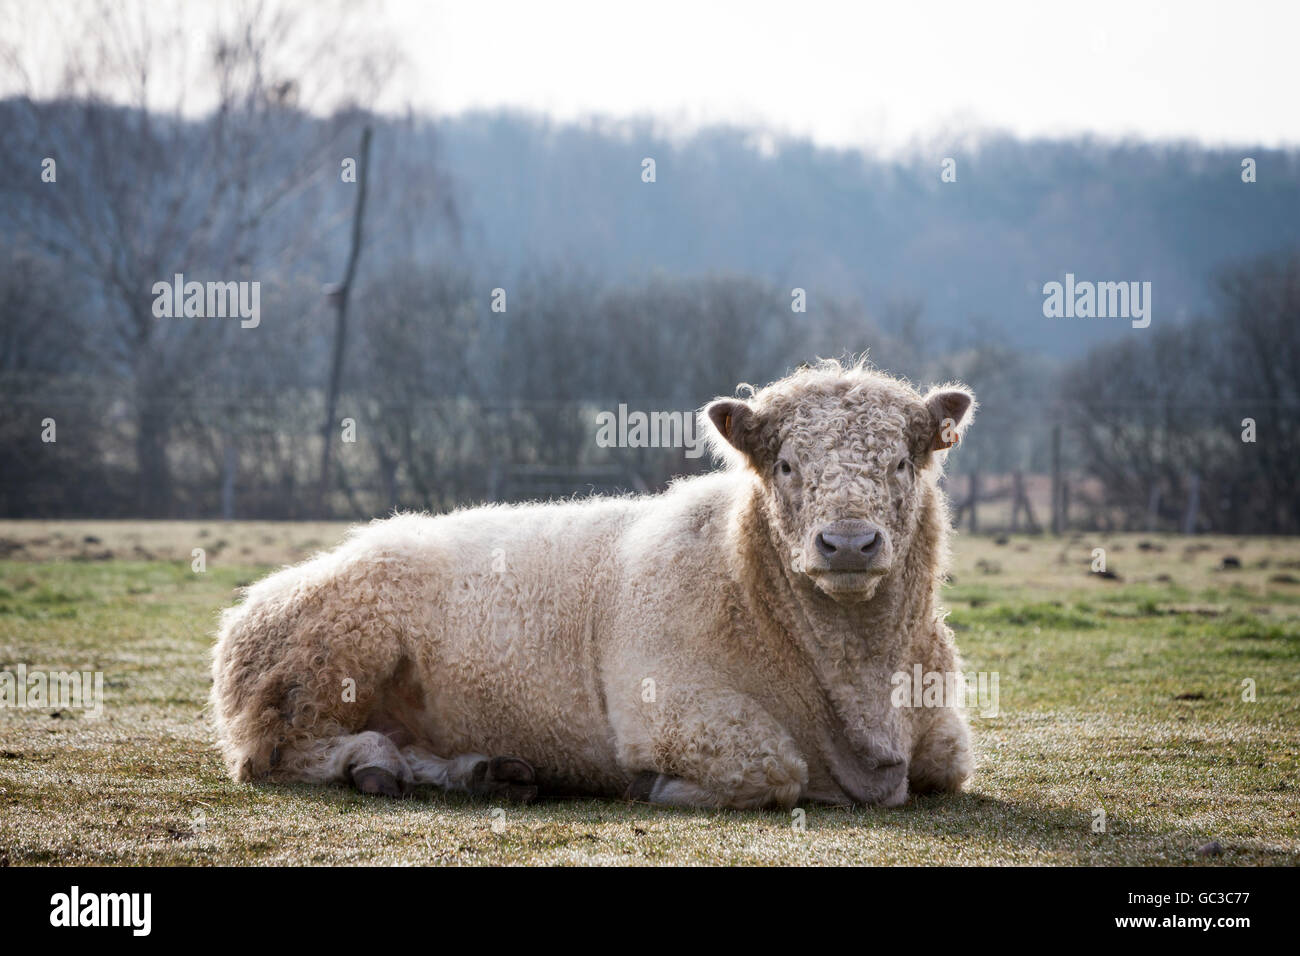 Imposing Galloway cattle breeding bull (Bos primigenius taurus) with blond pigmentation, appropriate animal welfare, - Stock Image